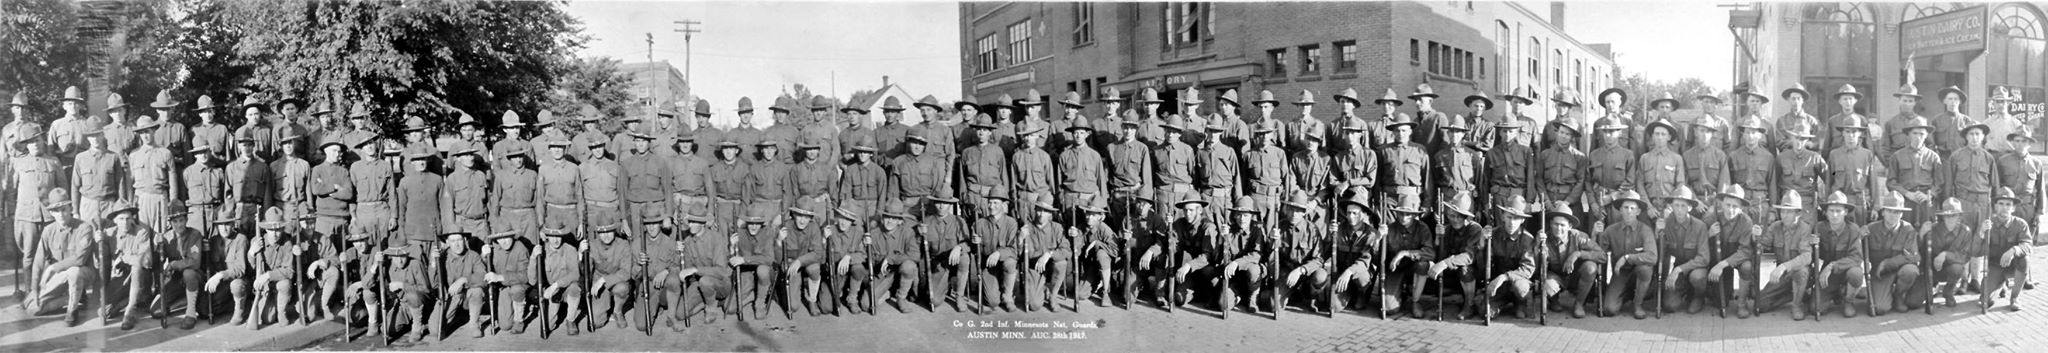 Co. G 2nd Inf. Minnesota National Guard - 1917